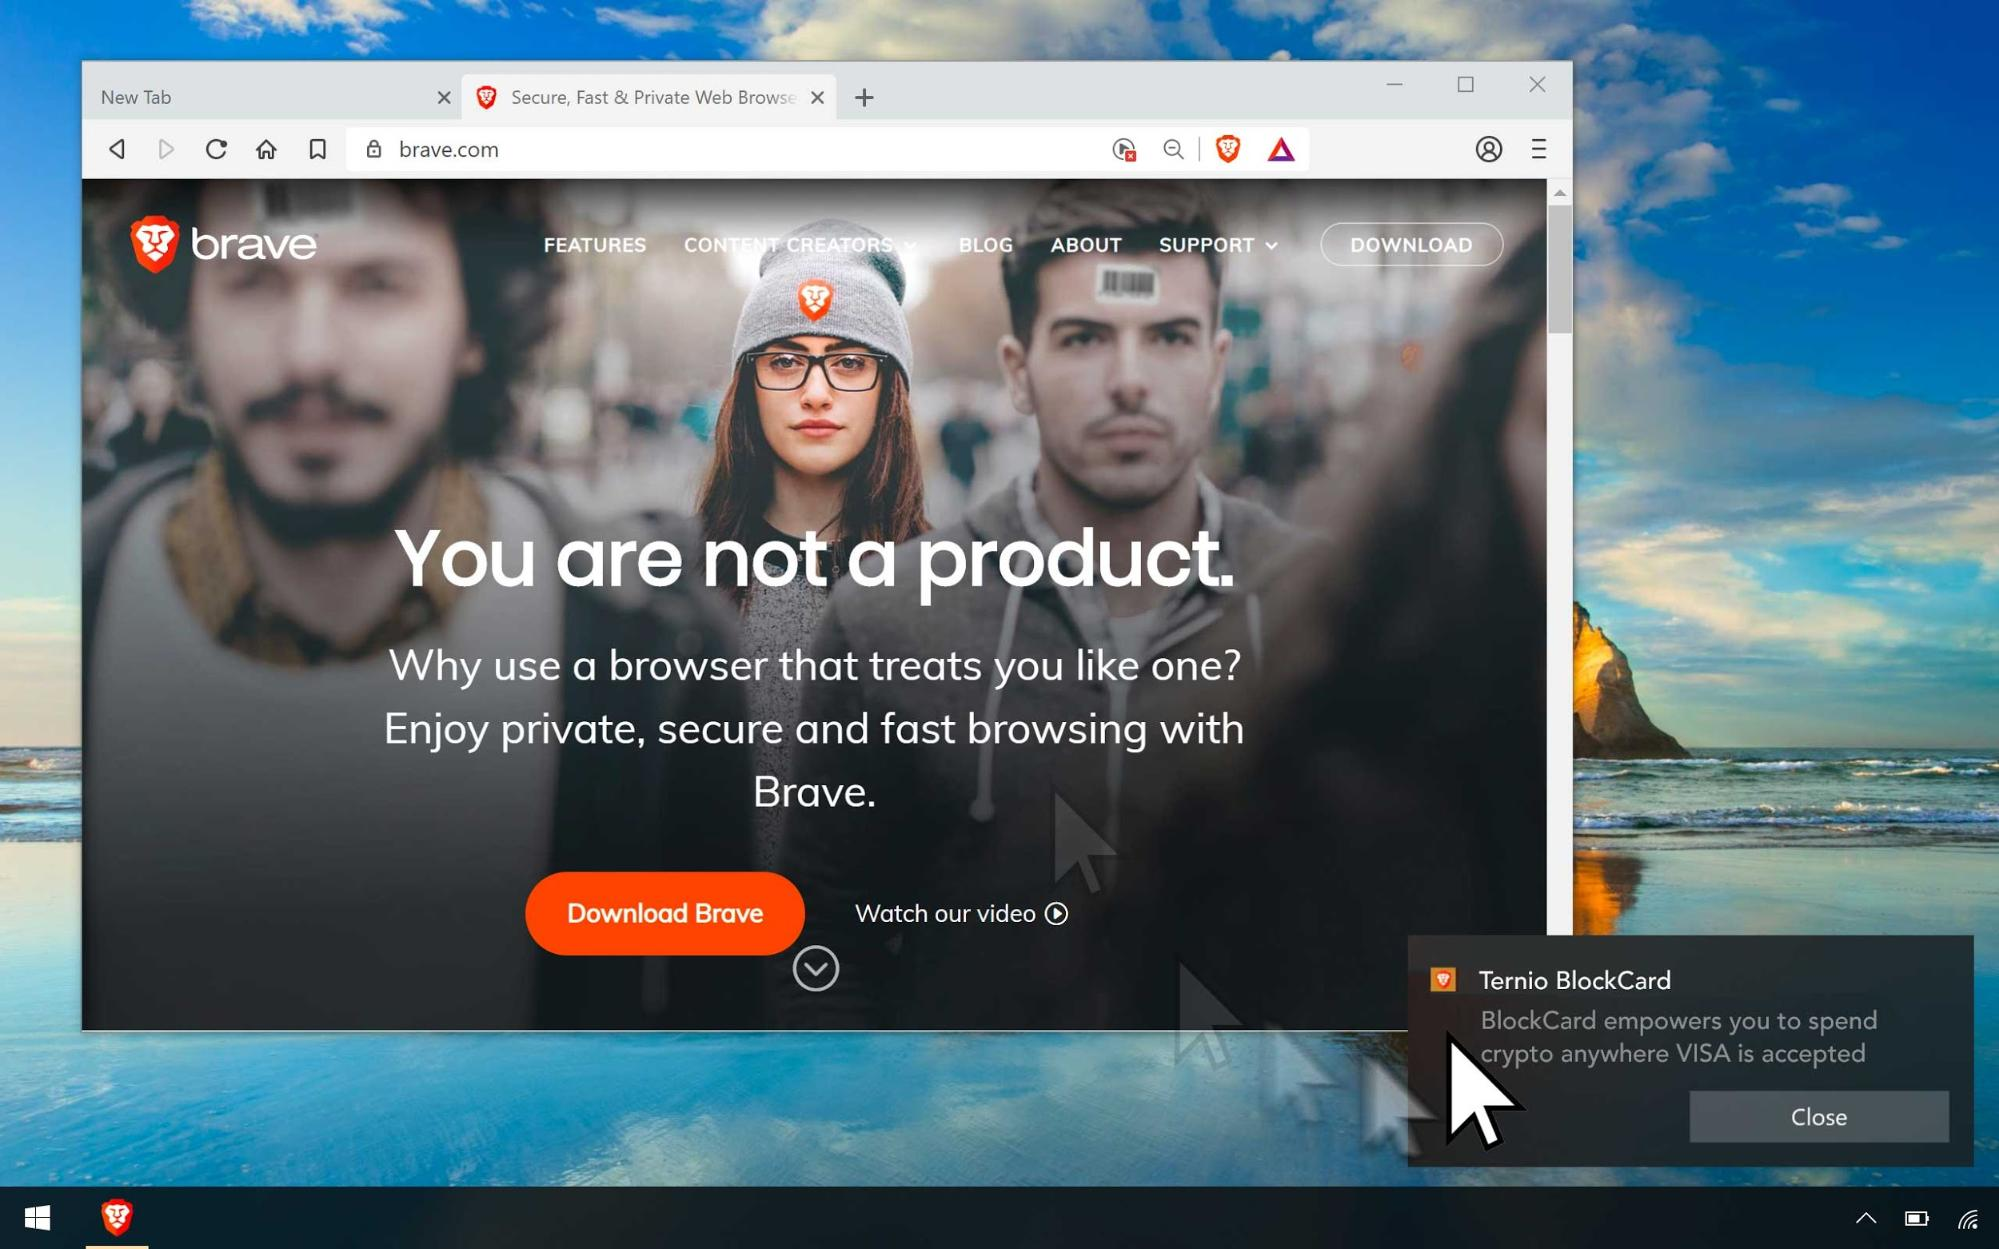 brave ads launch - Brave Ads are Live: Users now can get BAT for Viewing Ads